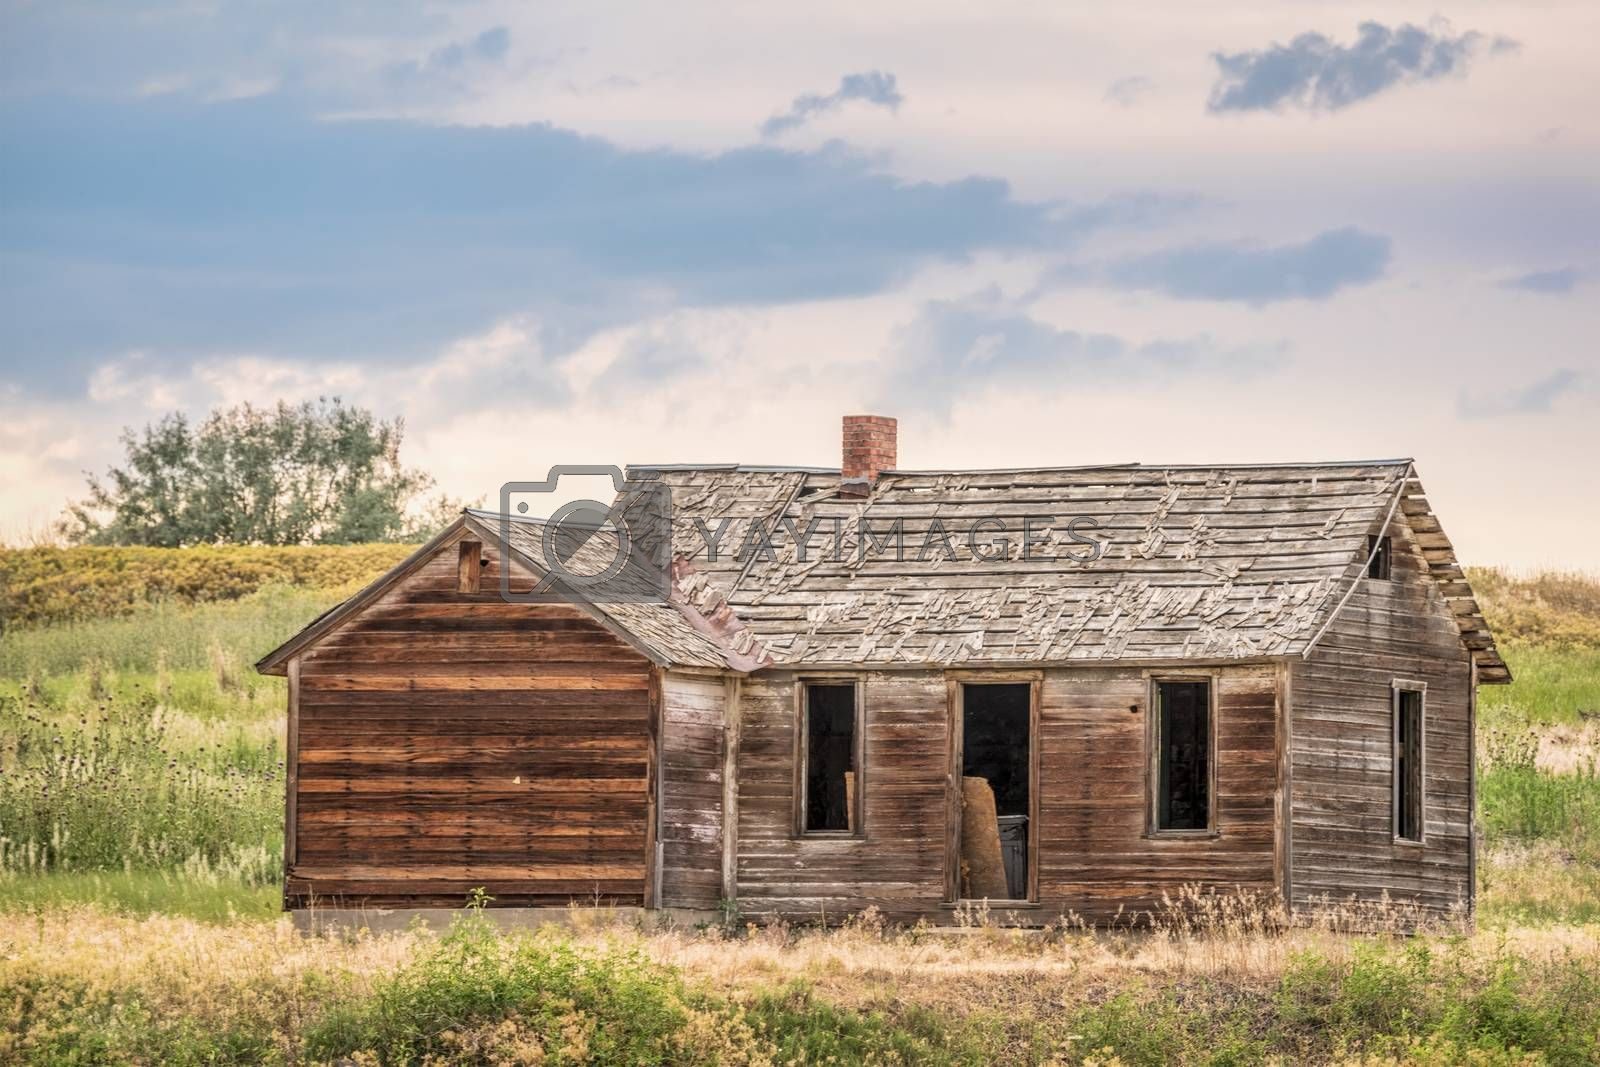 old abandoned farmhouse on a prairie, St Vrain State Park near Longmont, Colorado